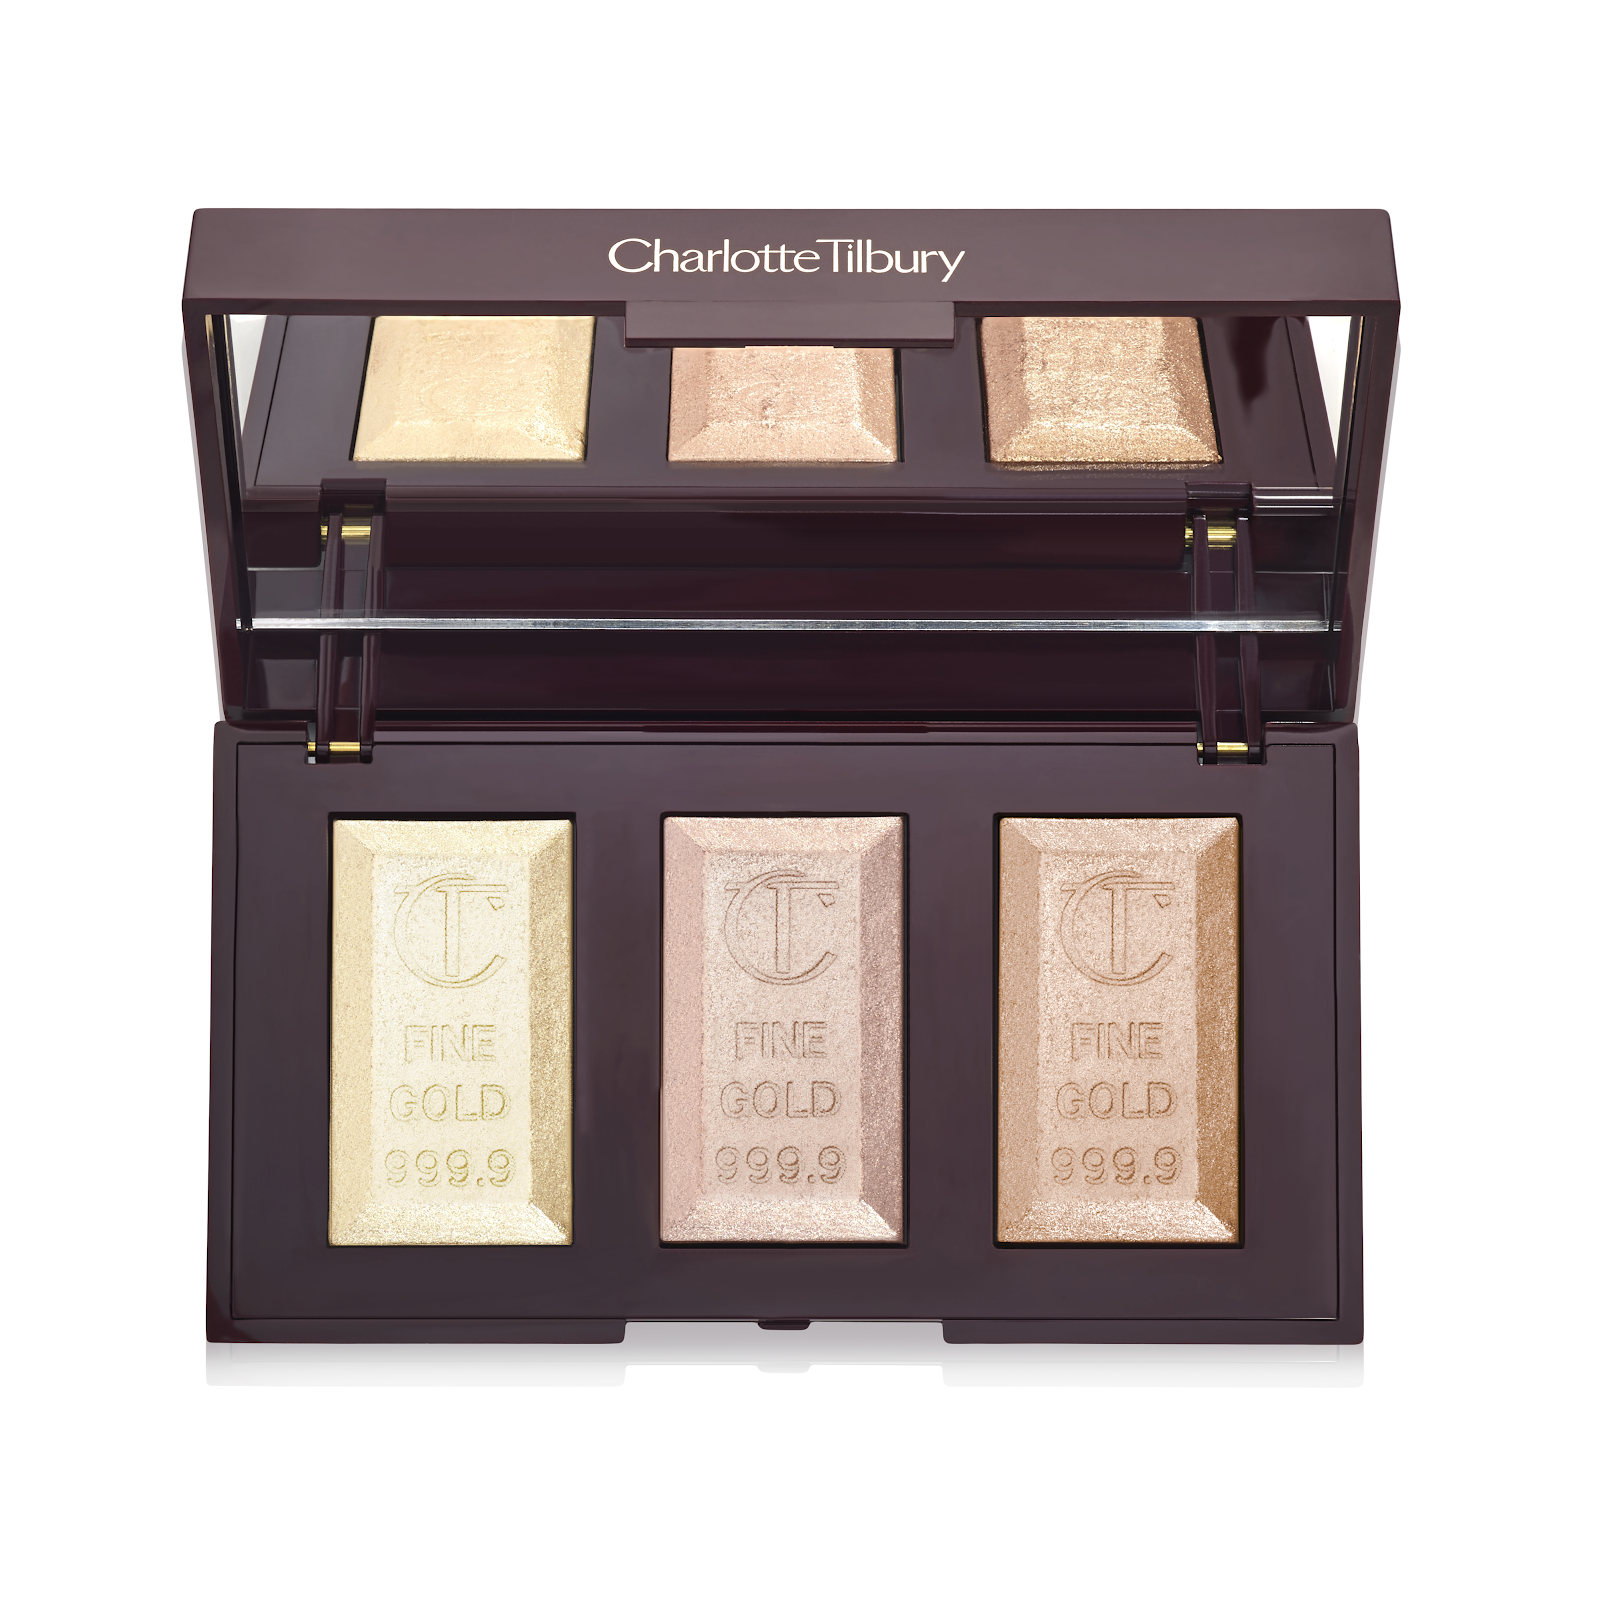 Charlotte-Tilbury-Bar-of-Gold-Trio-Vivi-Brizuela